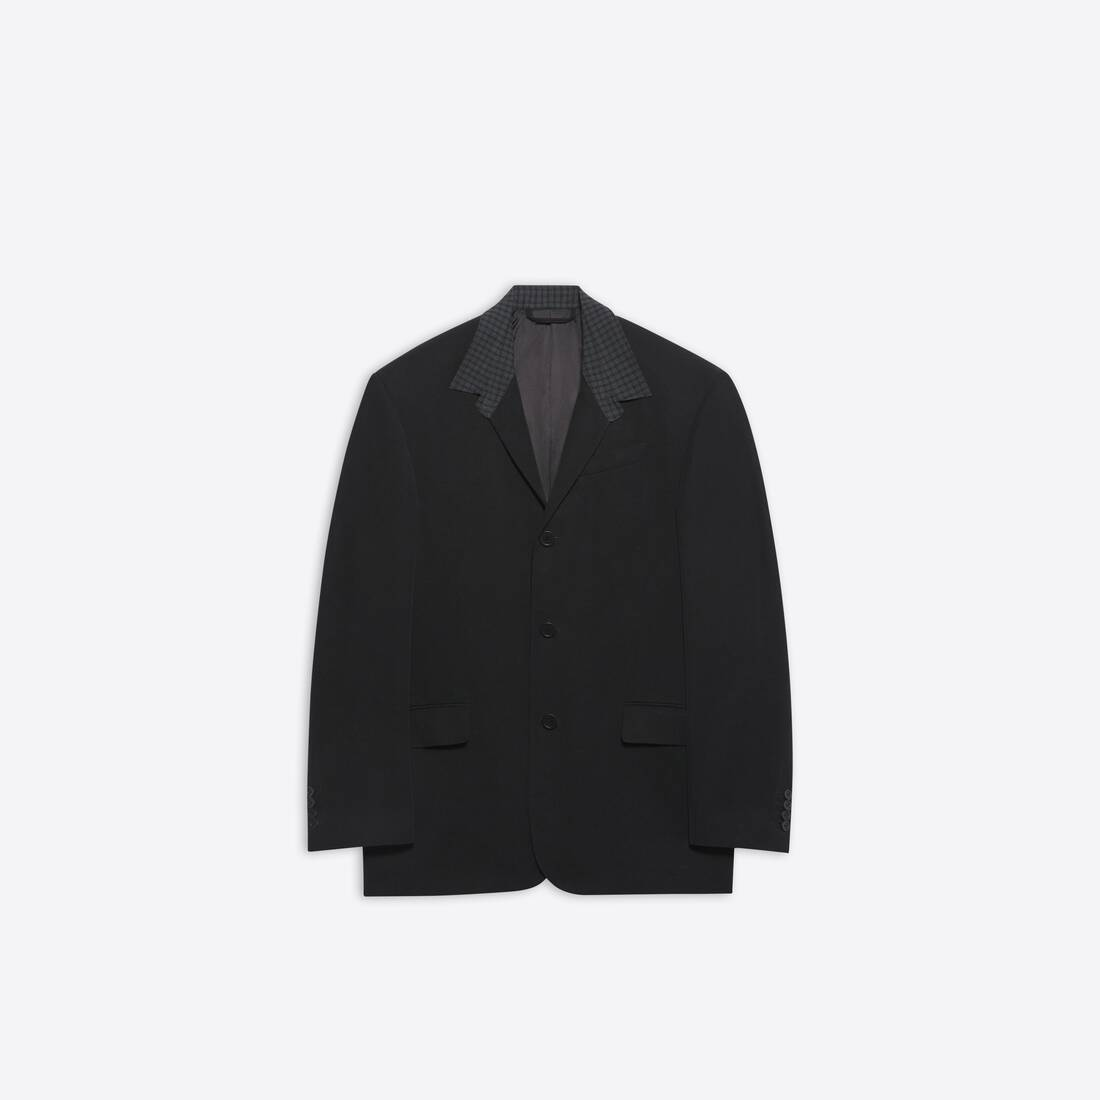 Display zoomed version of tailored shirt jacket 1